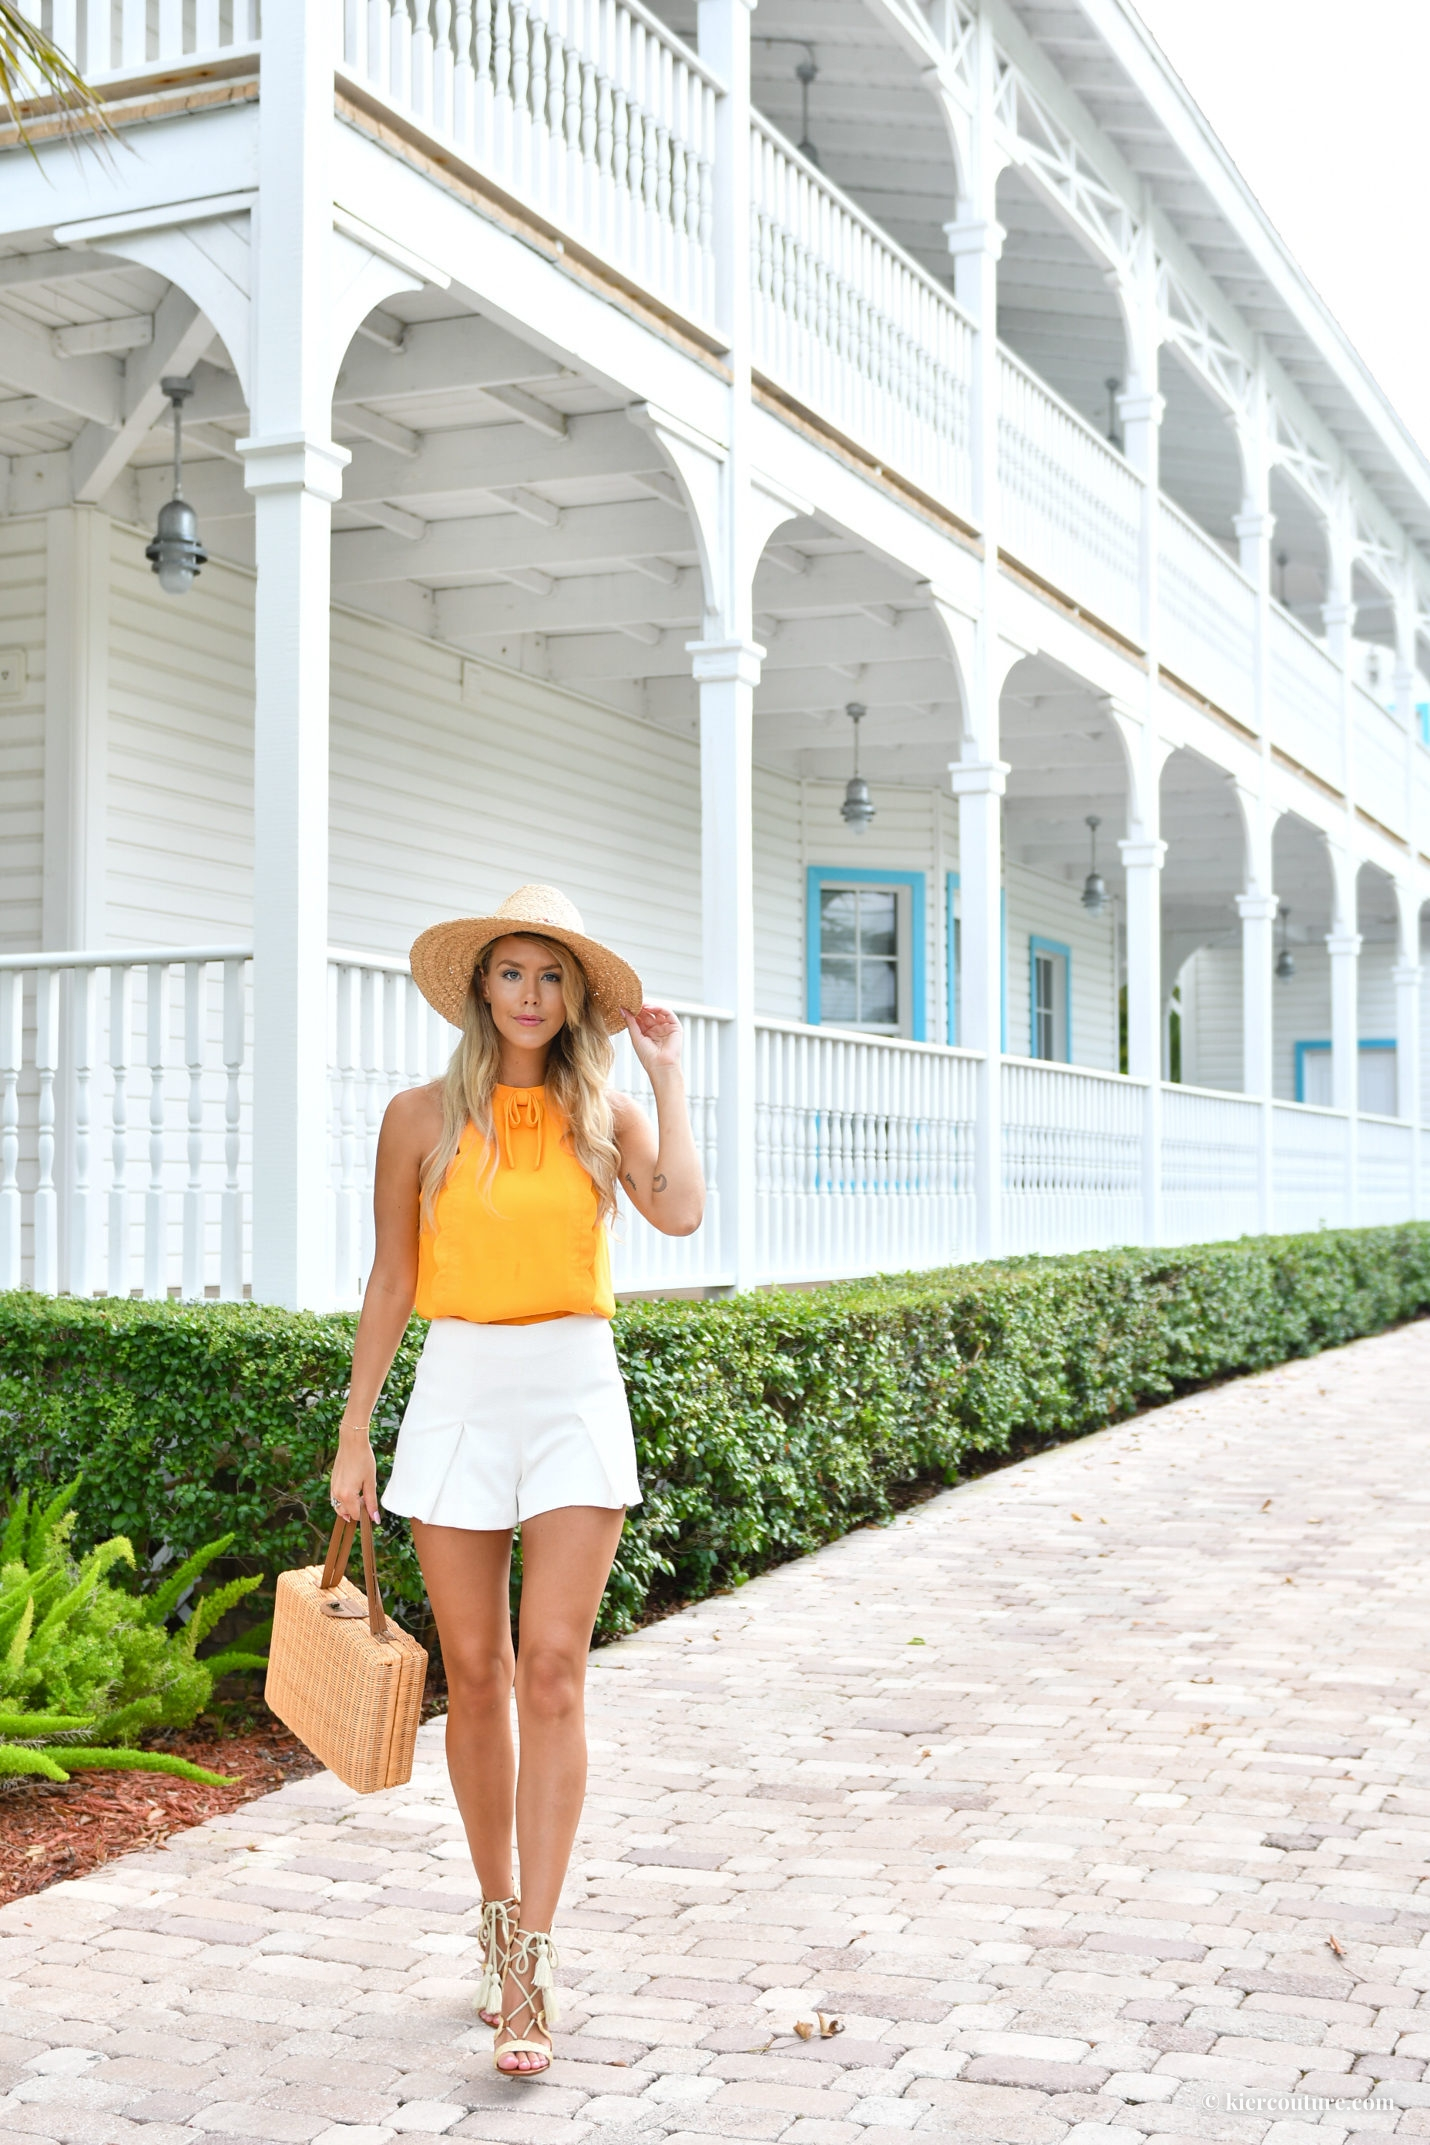 5 things to do in delray beach